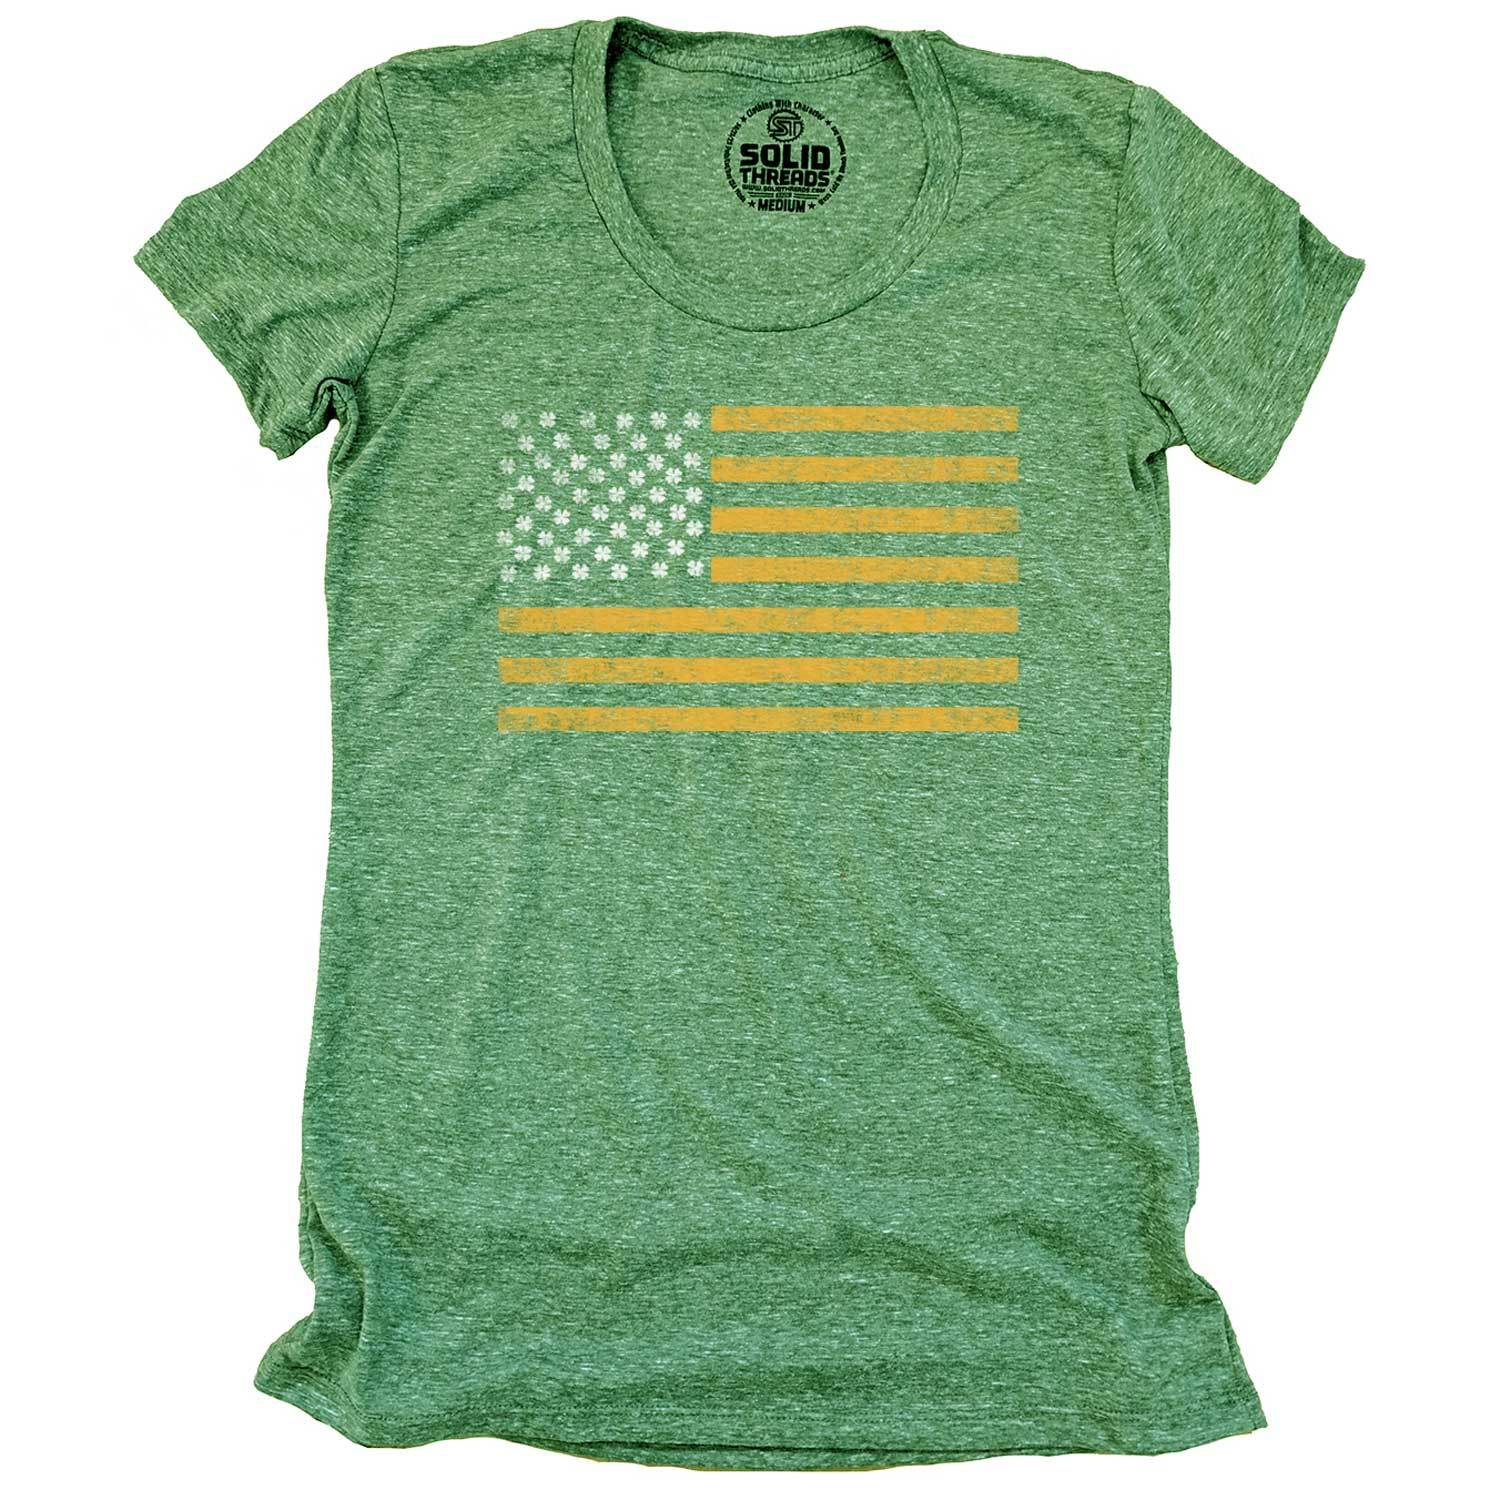 Women's Irish American Vintage Inspired Scoopneck Tee with cool, St. Paddy's graphic | Solid Threads